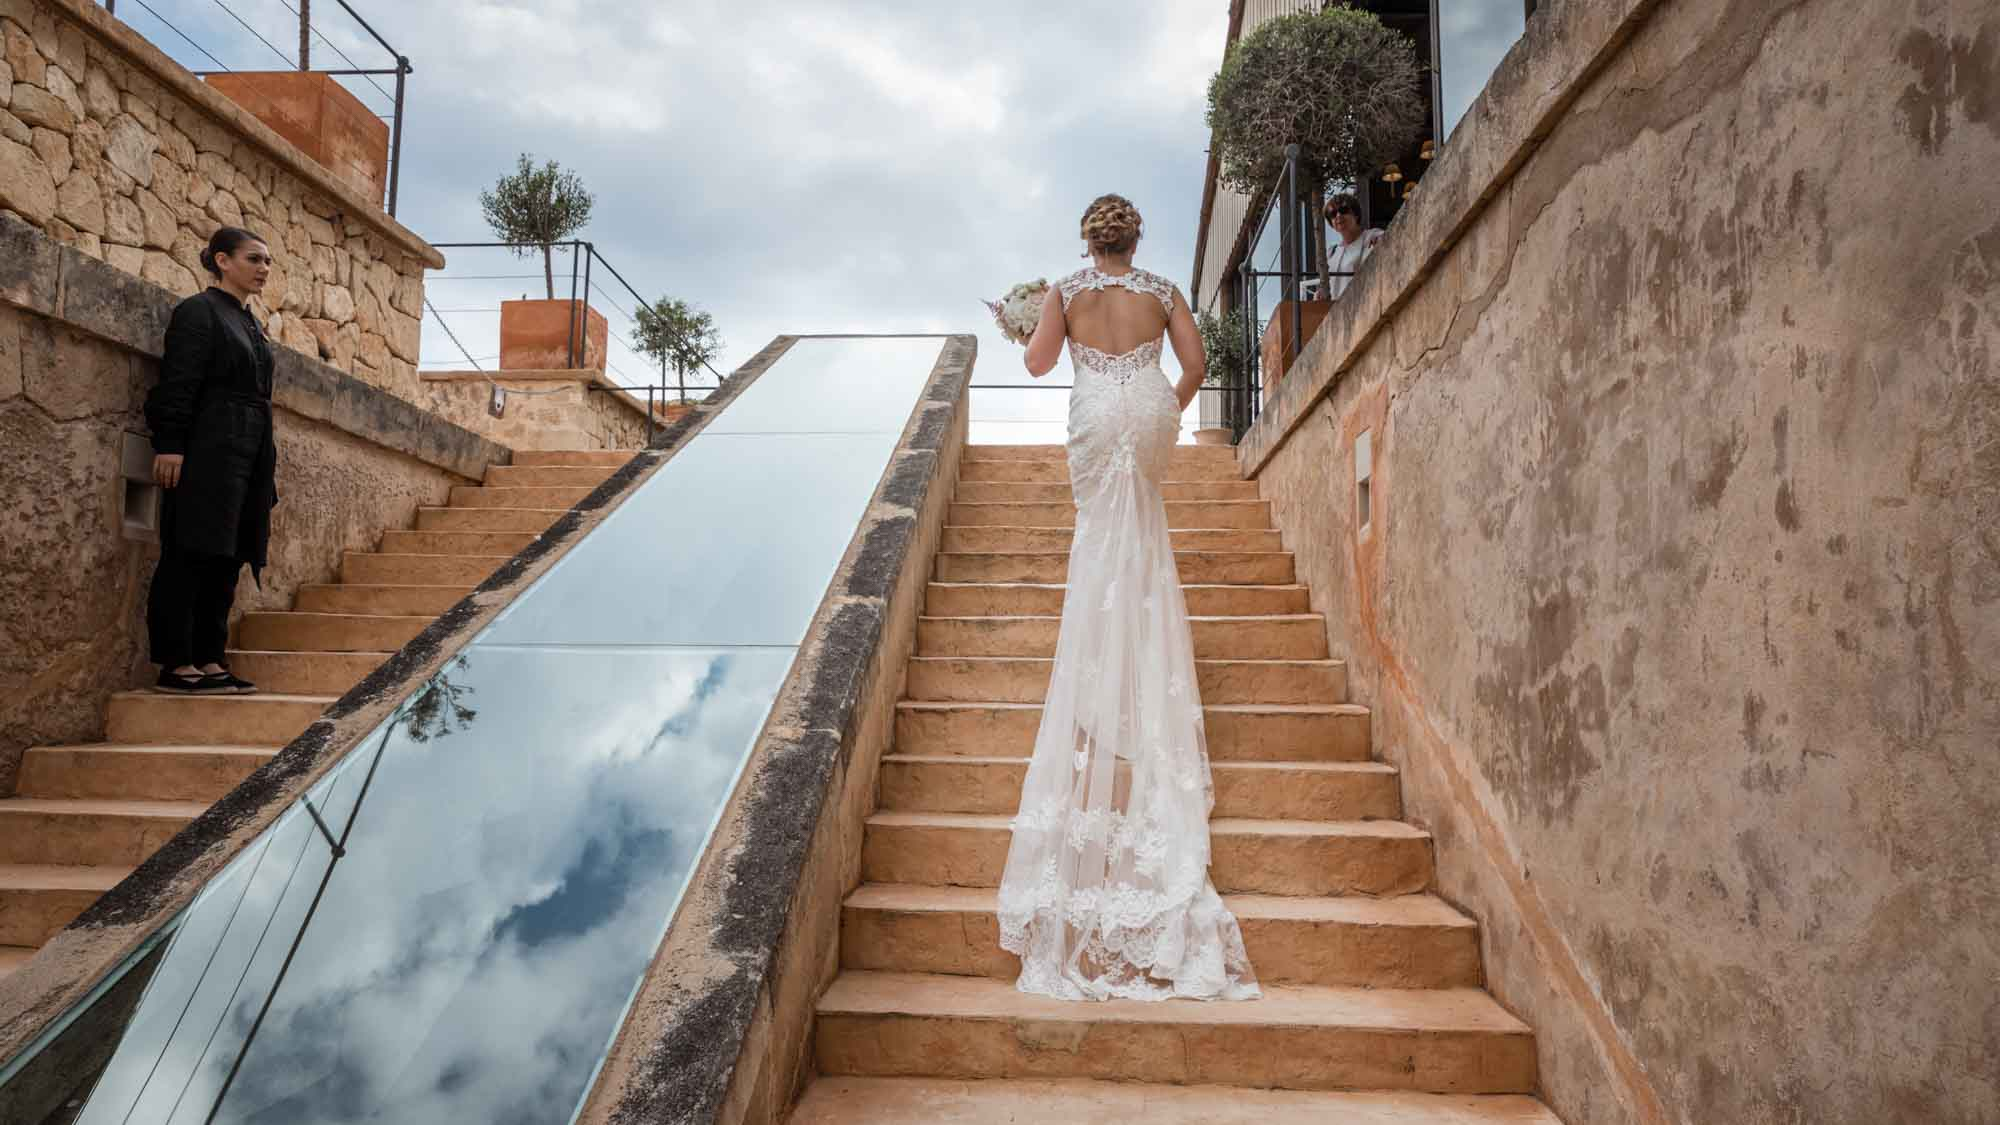 The bride ascends the stairs before her wedding reception at Cap Rocat